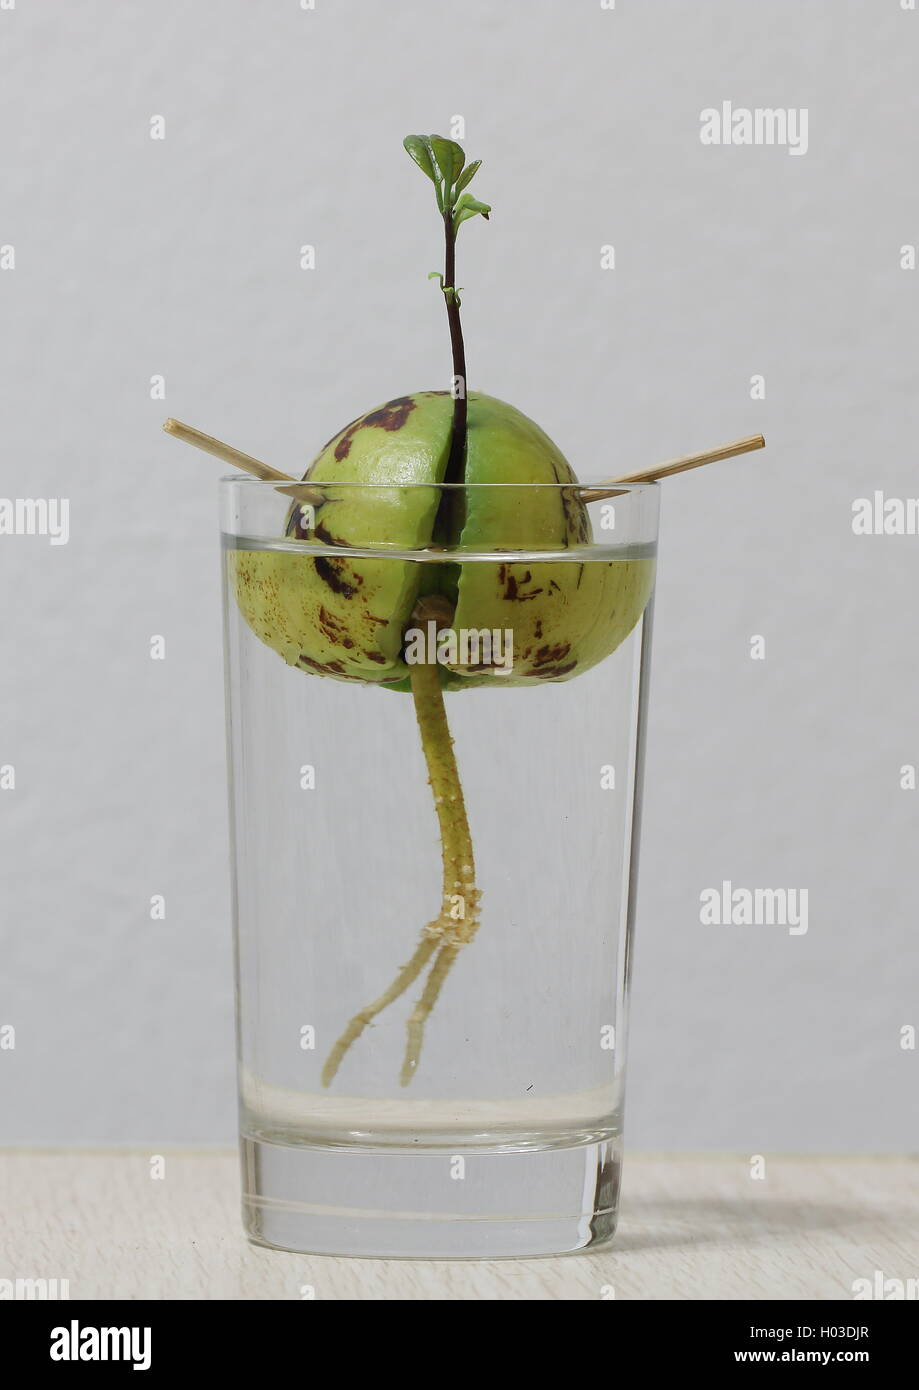 Avocado seed with new sprouting and roots in a glass of water - Stock Image